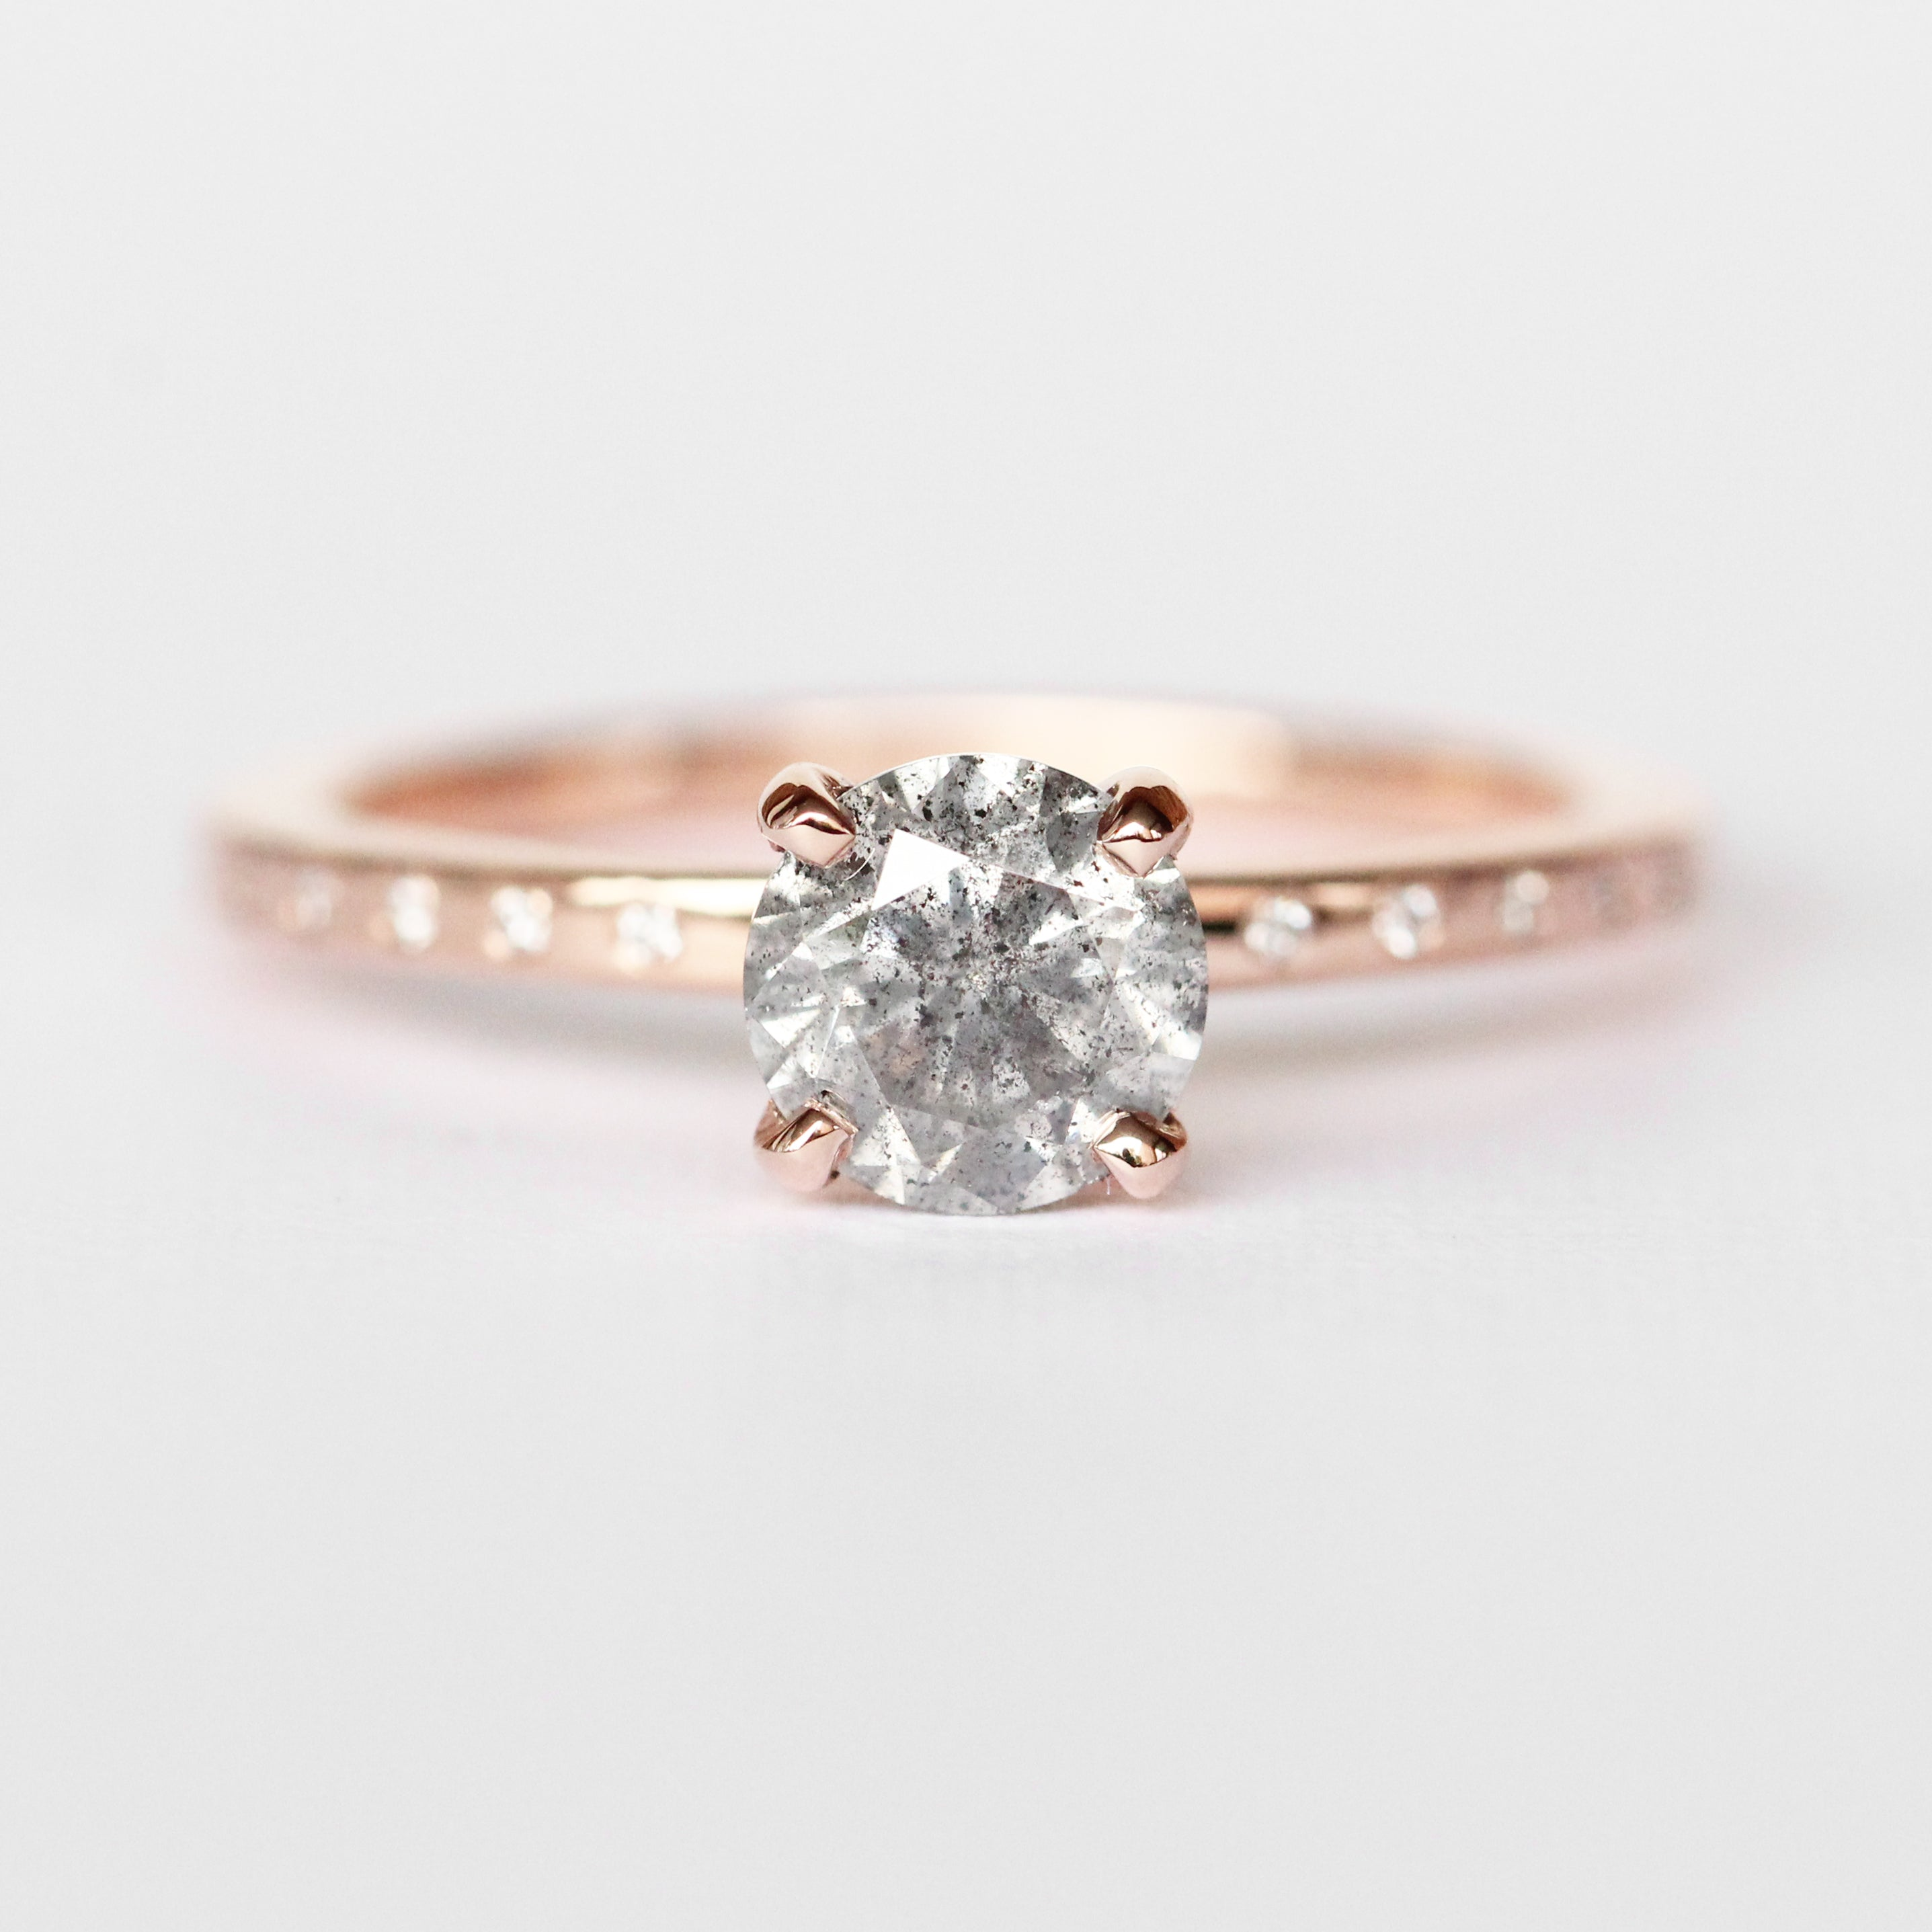 Heath Ring with an .83 ct Celestial Diamond in 14k Rose Gold - Ready to Size and Ship - Celestial Diamonds ® by Midwinter Co.